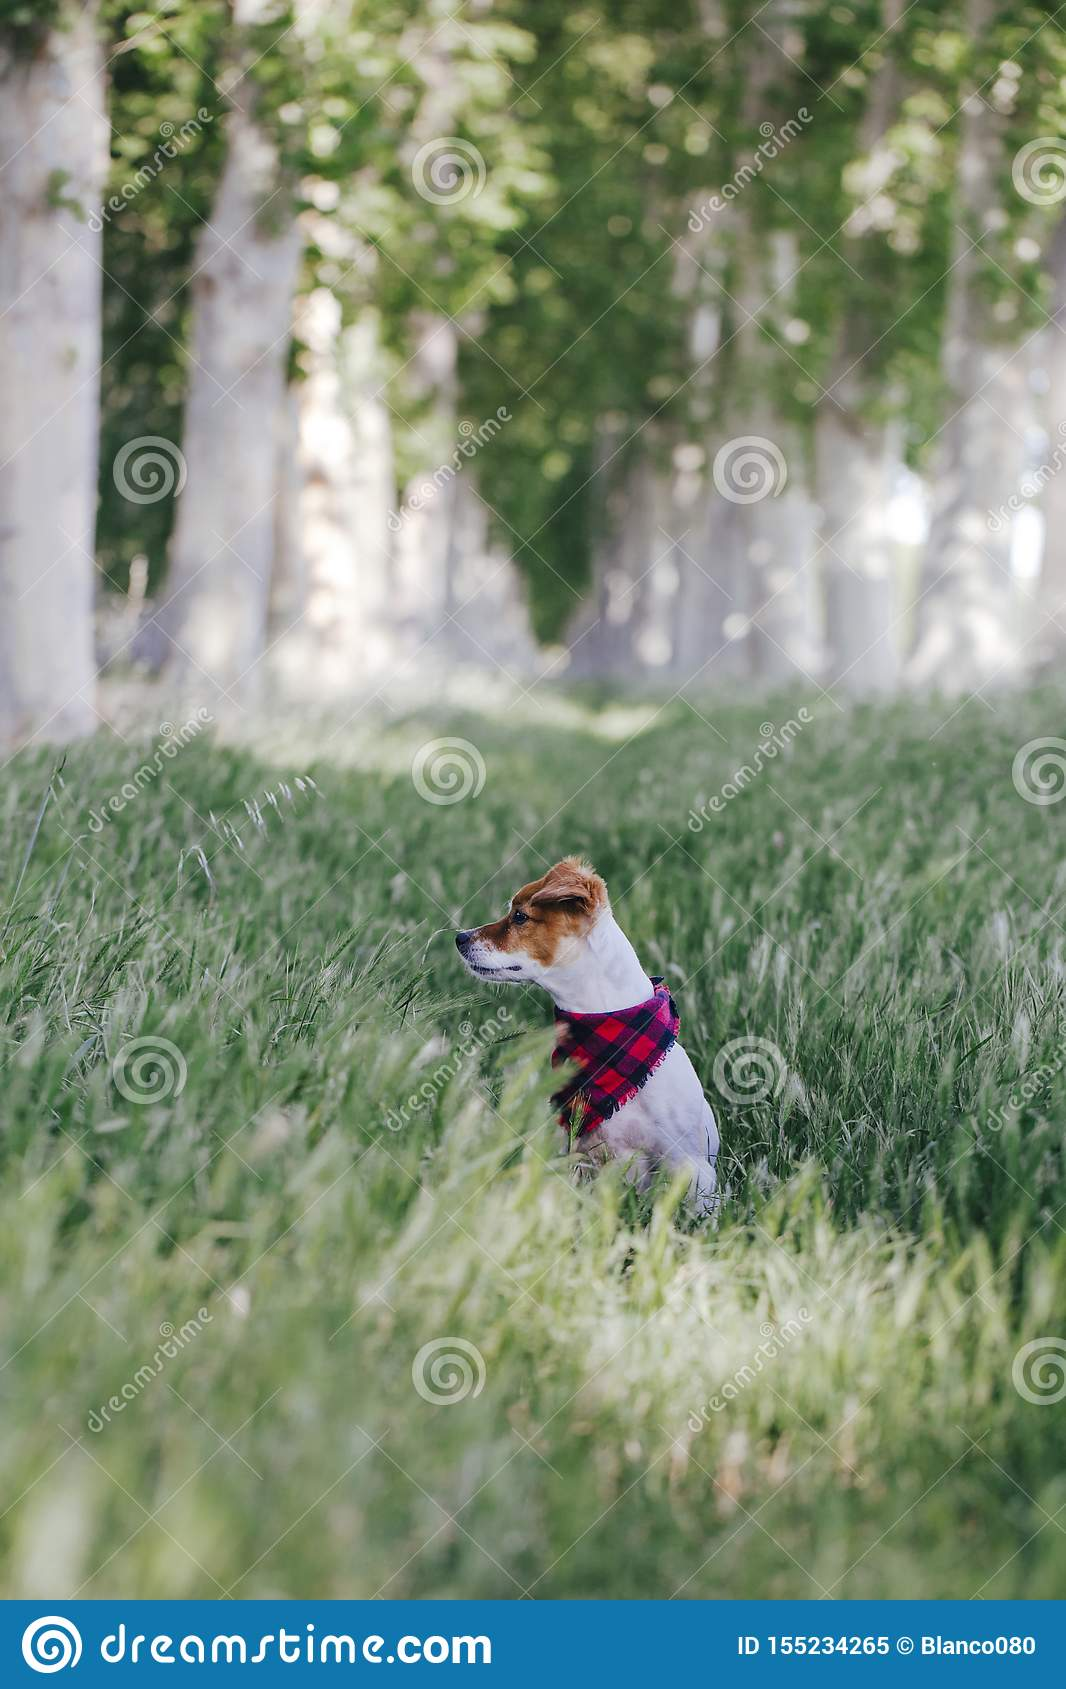 Cute small jack russell dog standing outdoors in a trees way and looking at the camera. Wearing a plaid bandana. Pets outdoors